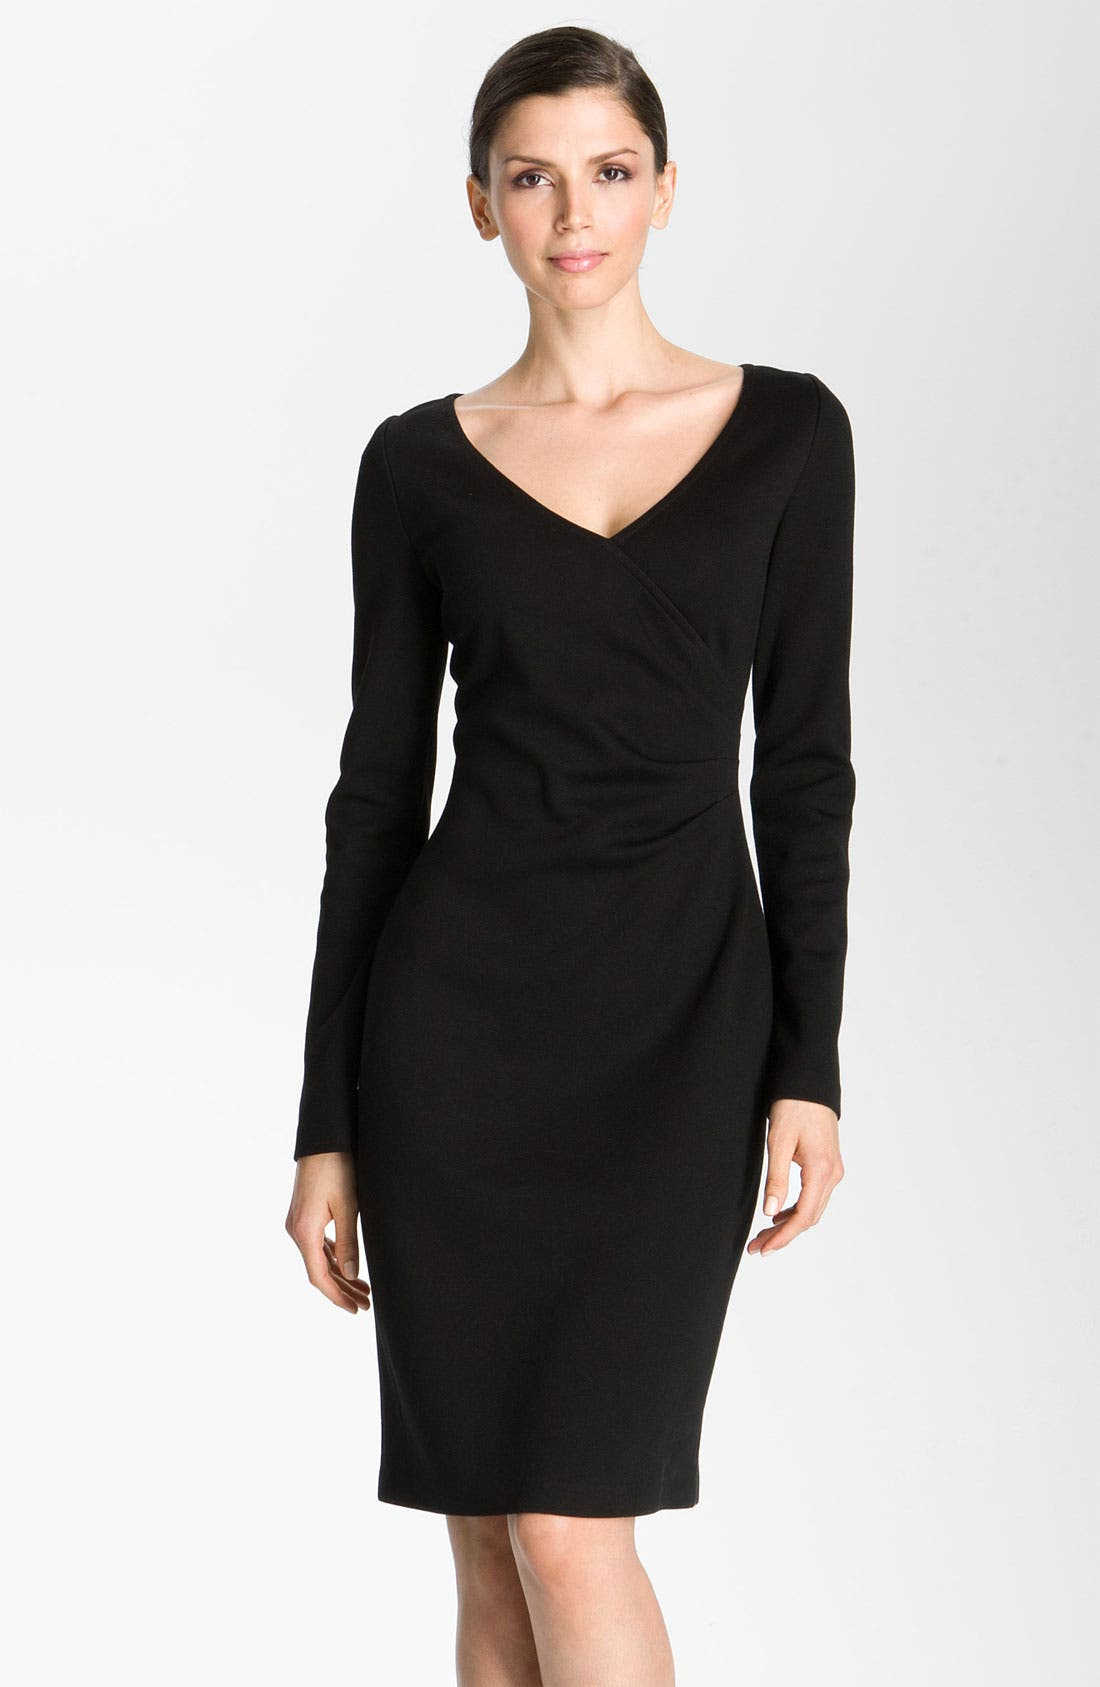 Alternate Image 1 Selected - St. John Collection Milano Knit Faux Wrap Dress